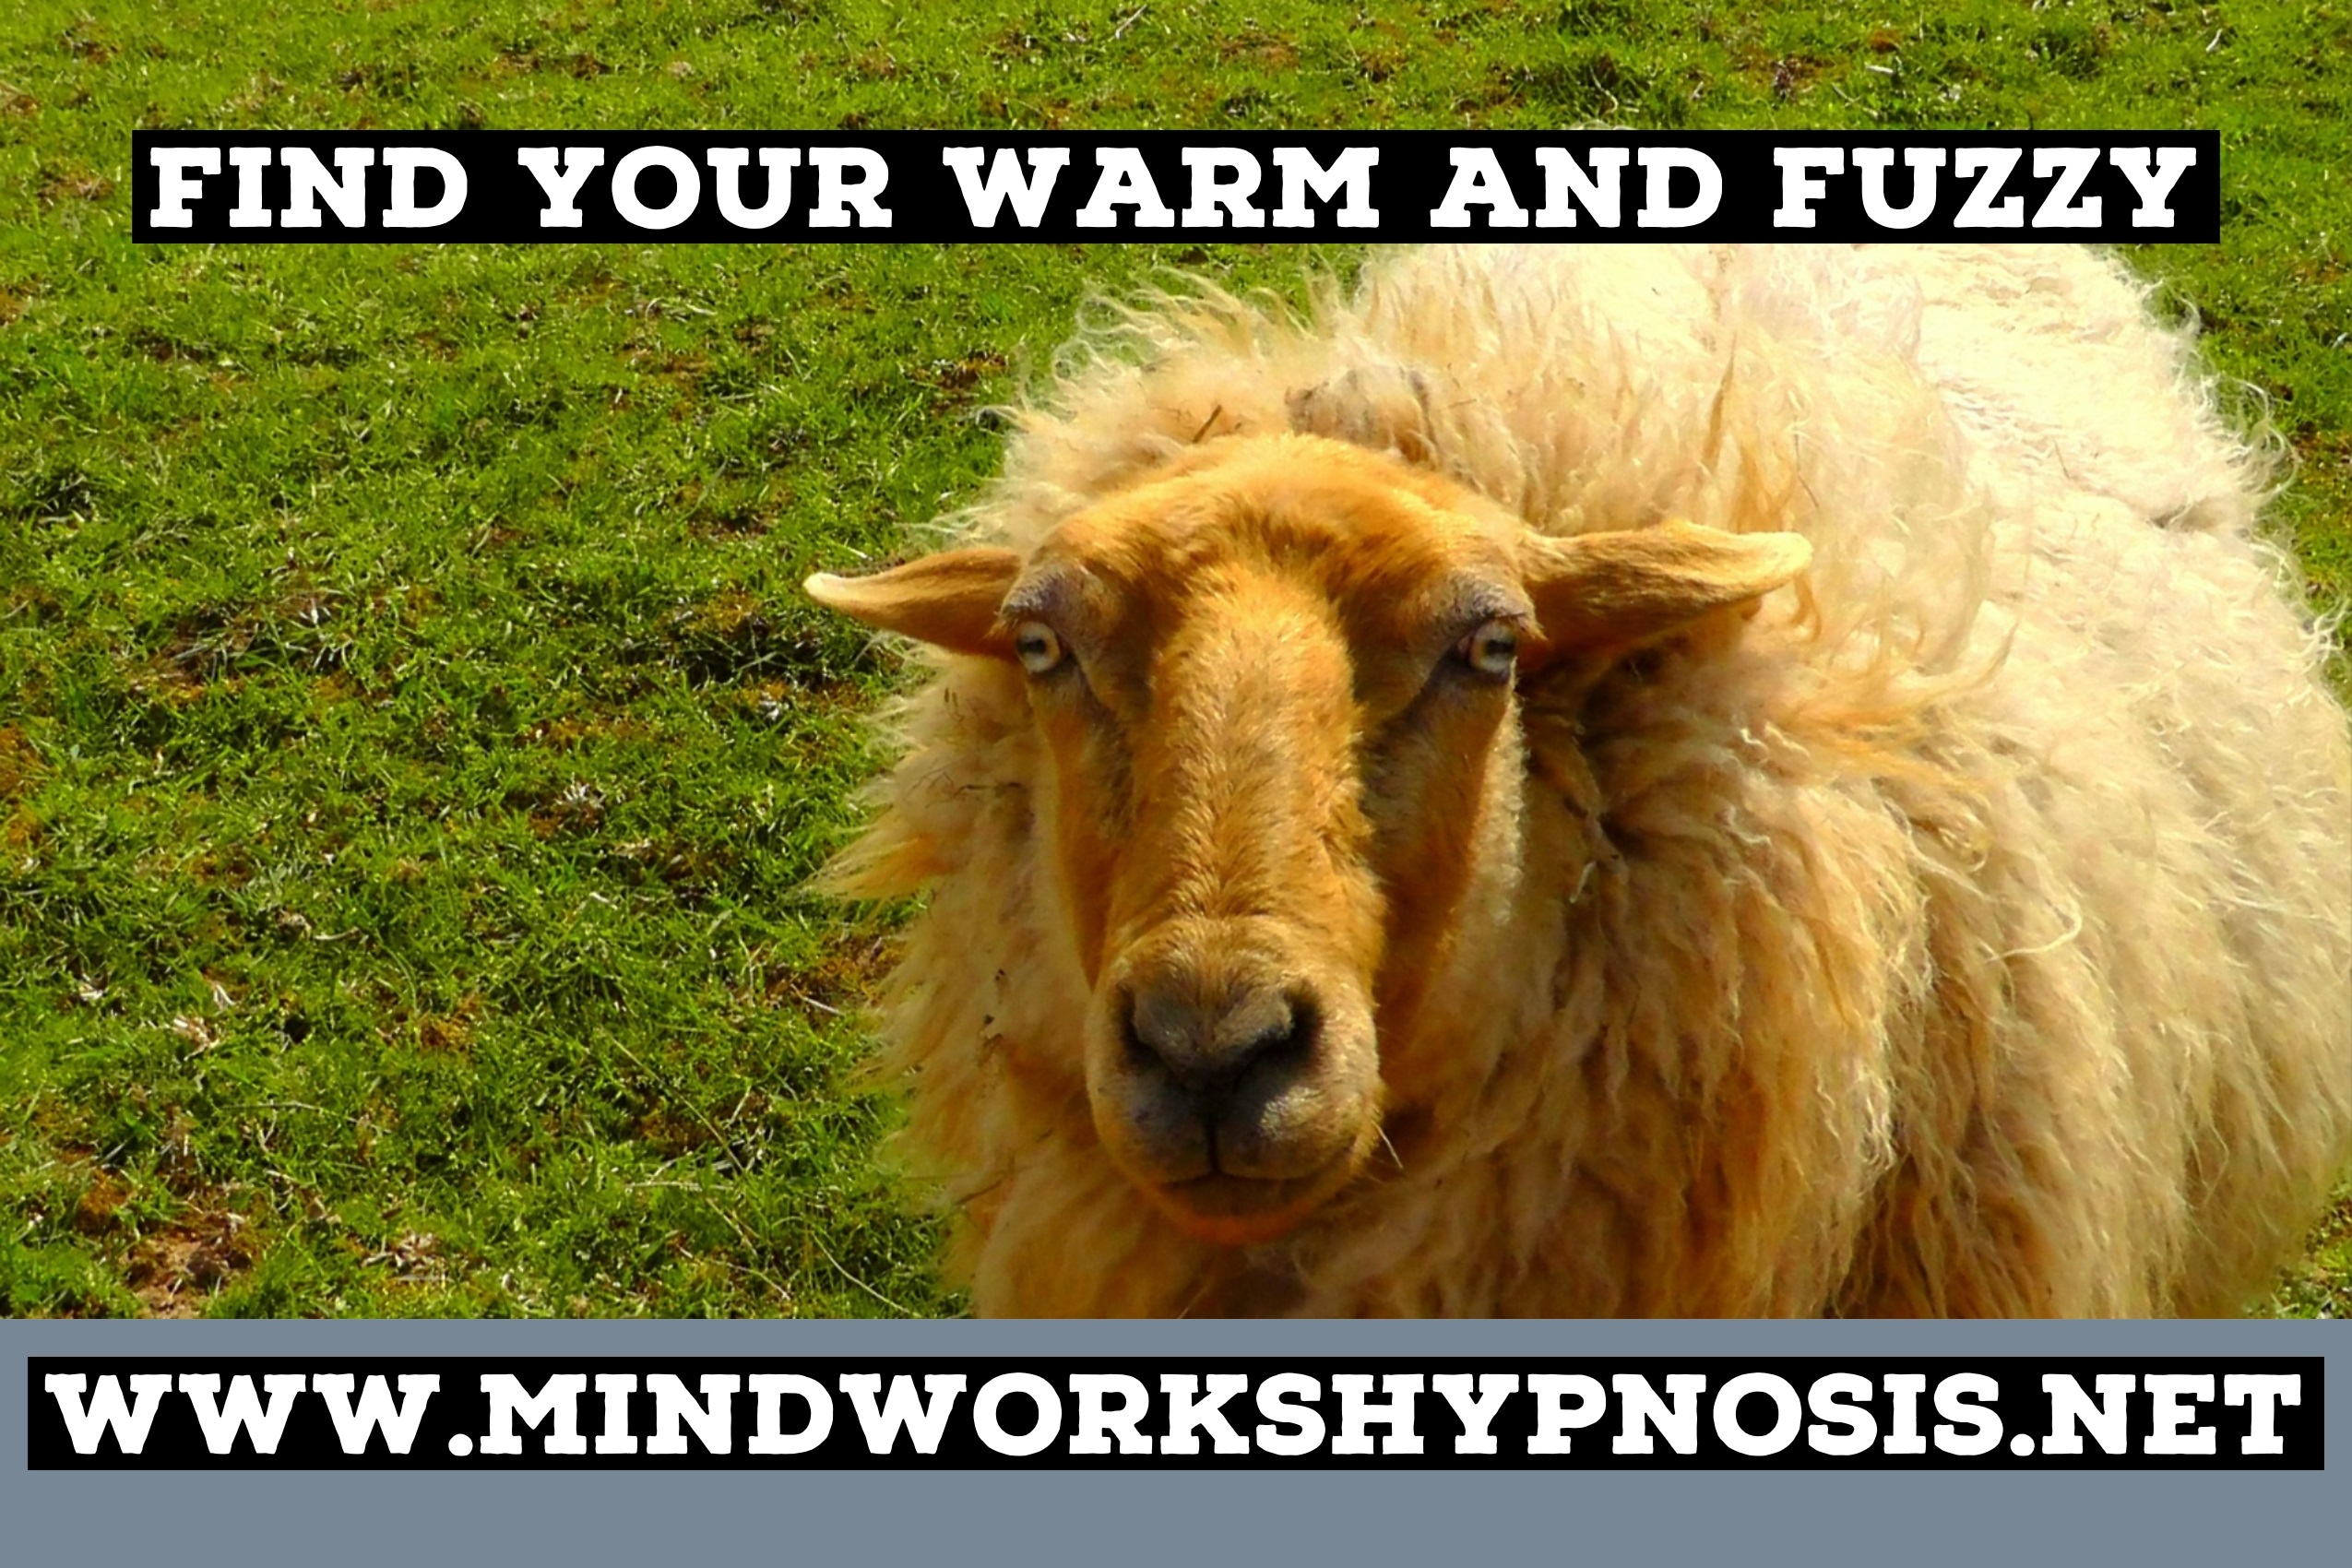 Find your warm and fuzzy as part of your Designer Feelings with Mindworks Hypnosis & NLP.